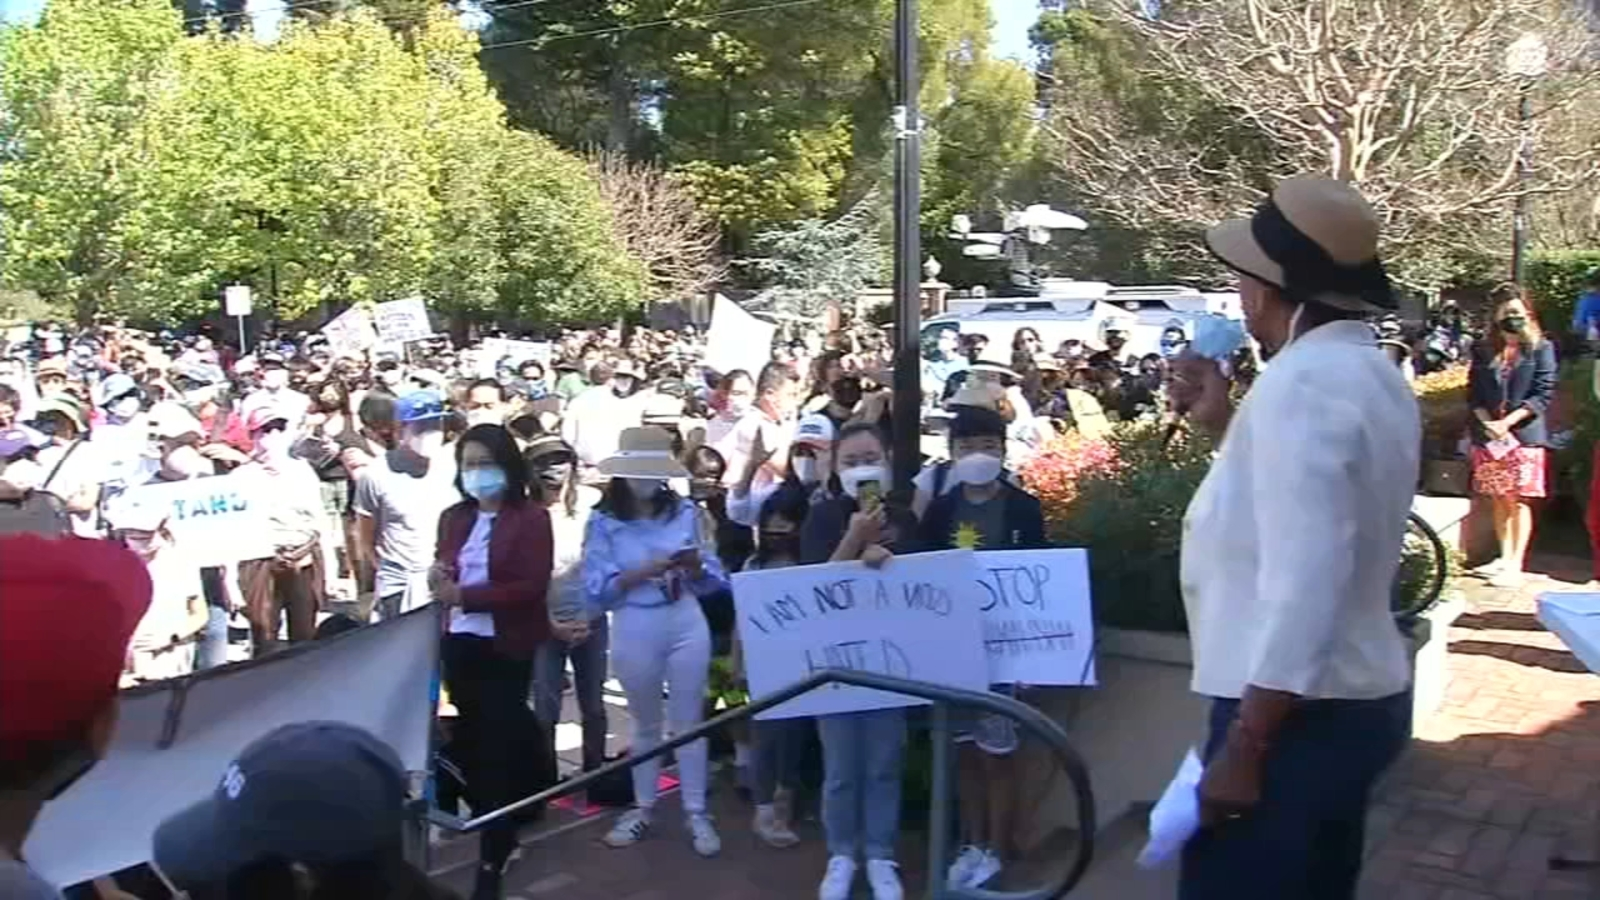 abc7news.com: 'We can stop hate together': Rallies held across the Bay Area to stop AAPI violence